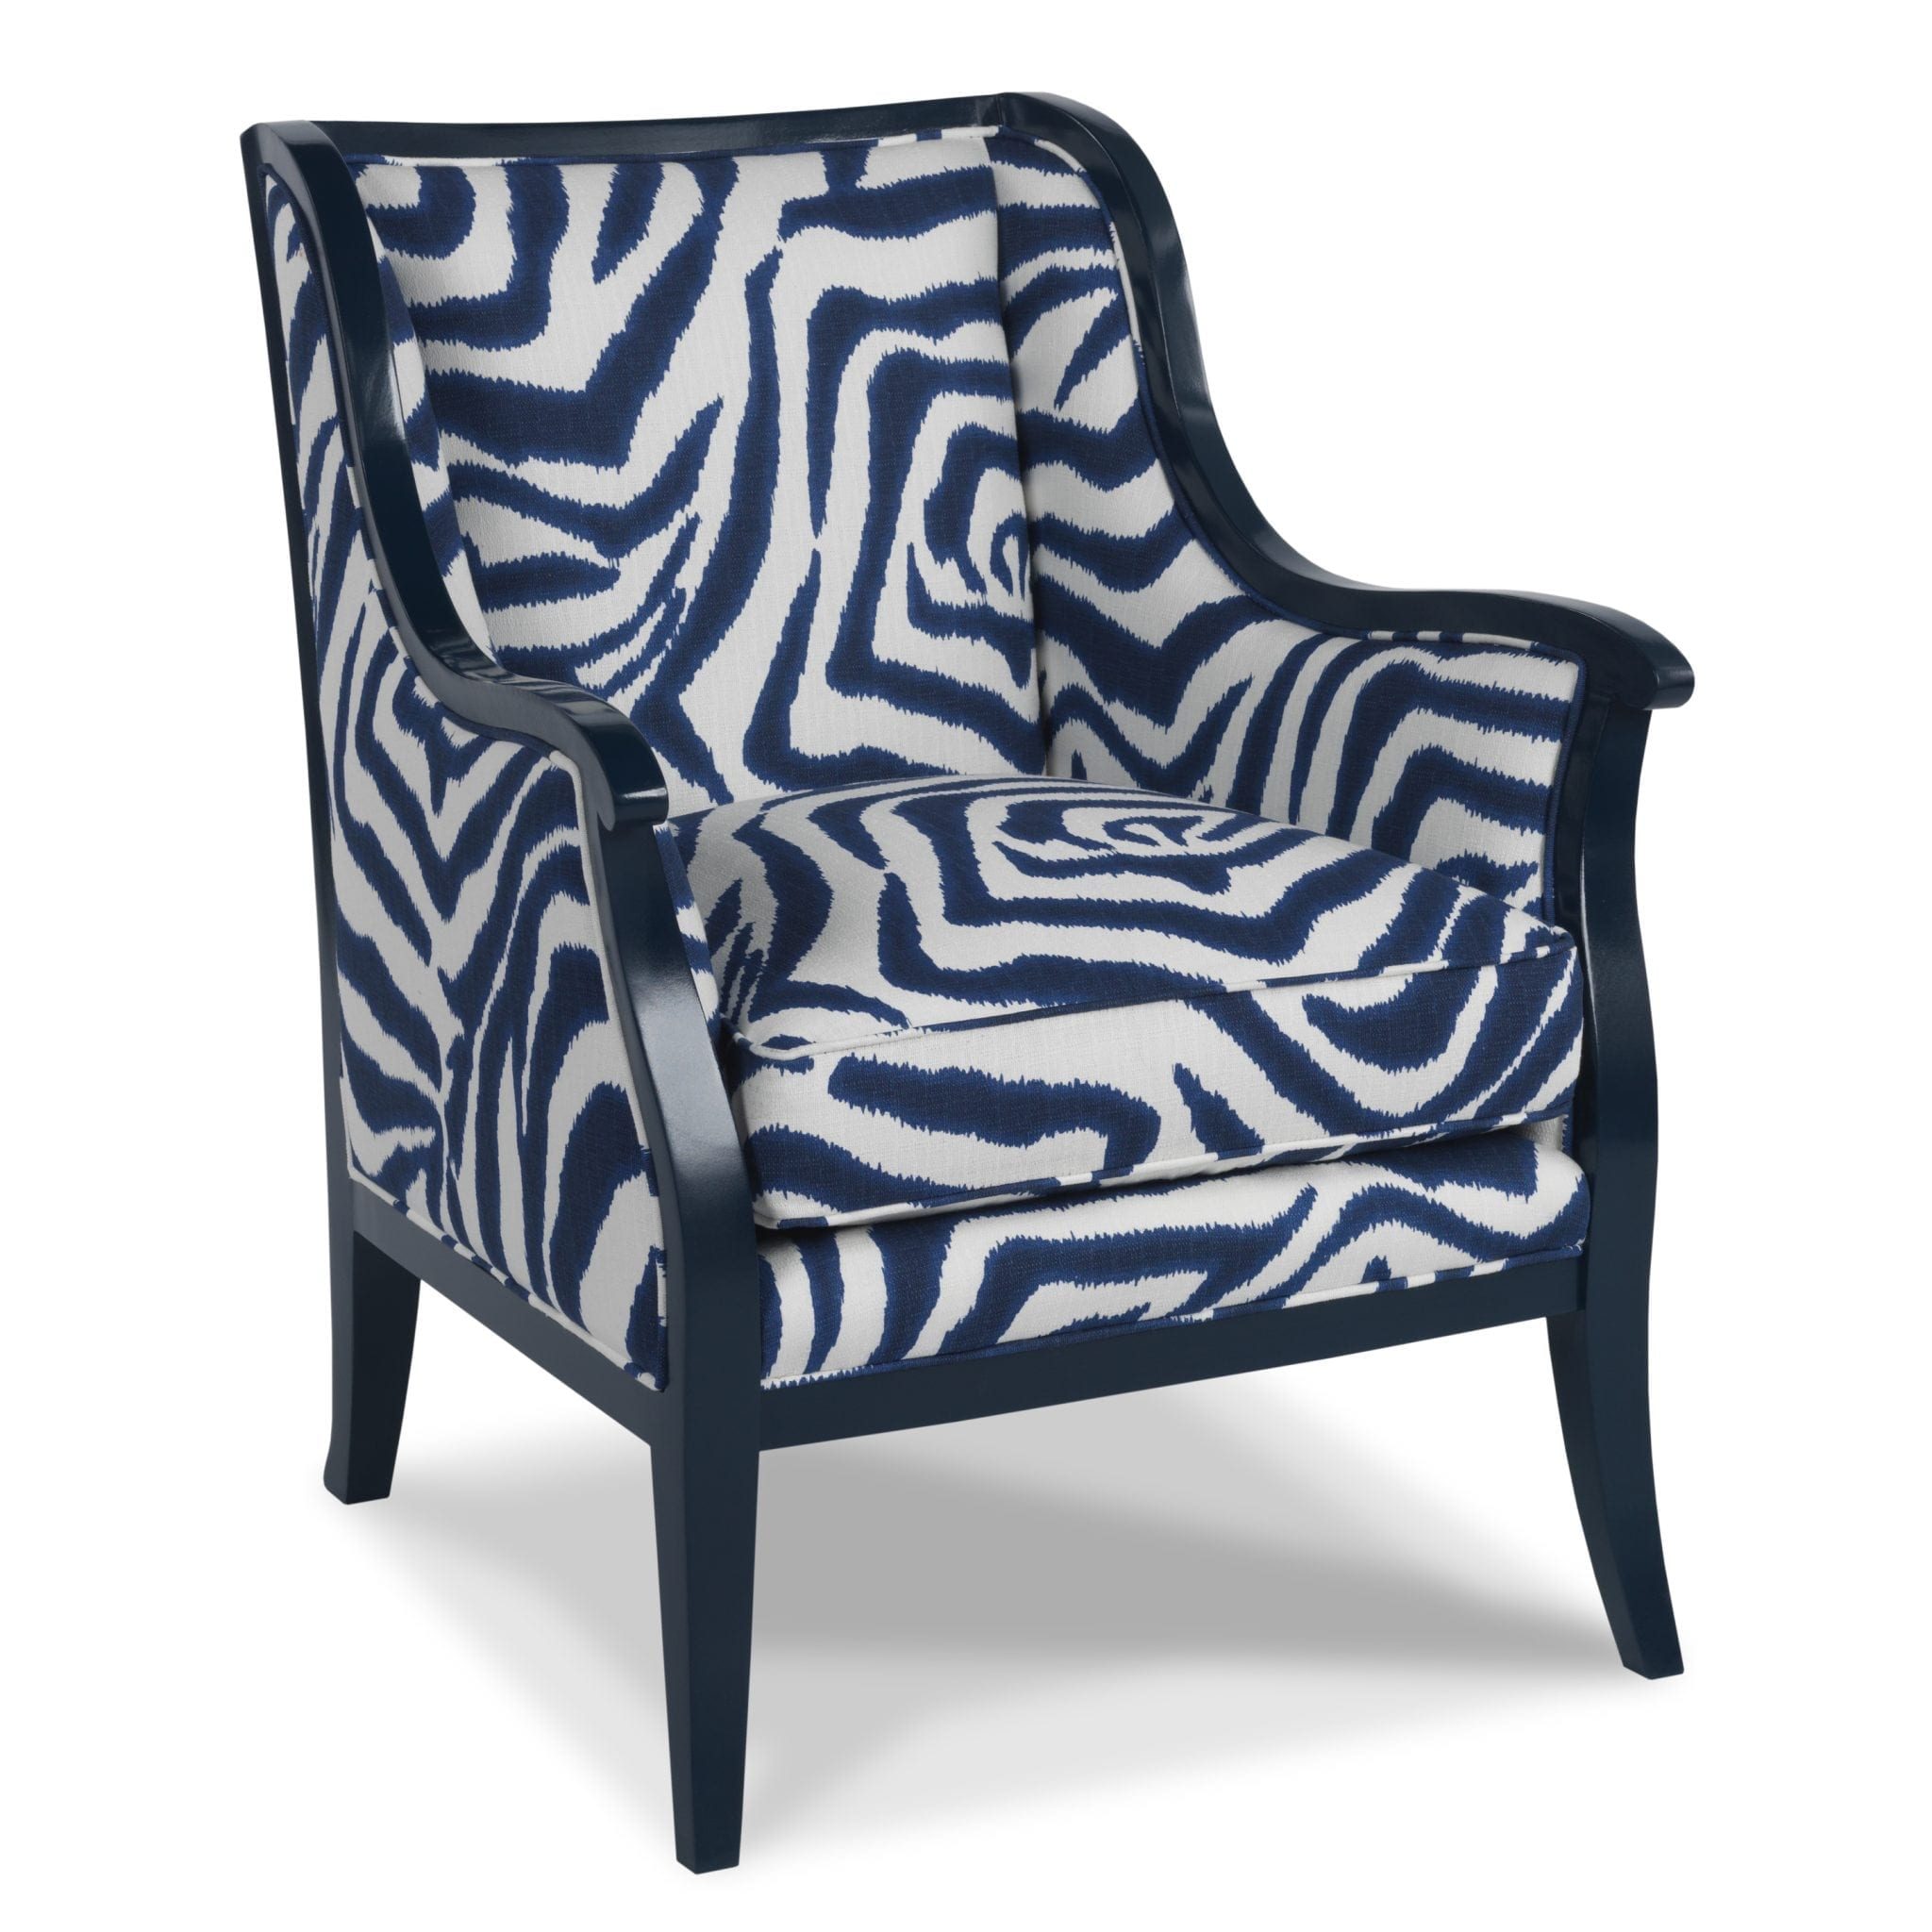 animal print accent chairs vitra eames lounge chair and ottoman express your wild side sacksteder 39s interiors